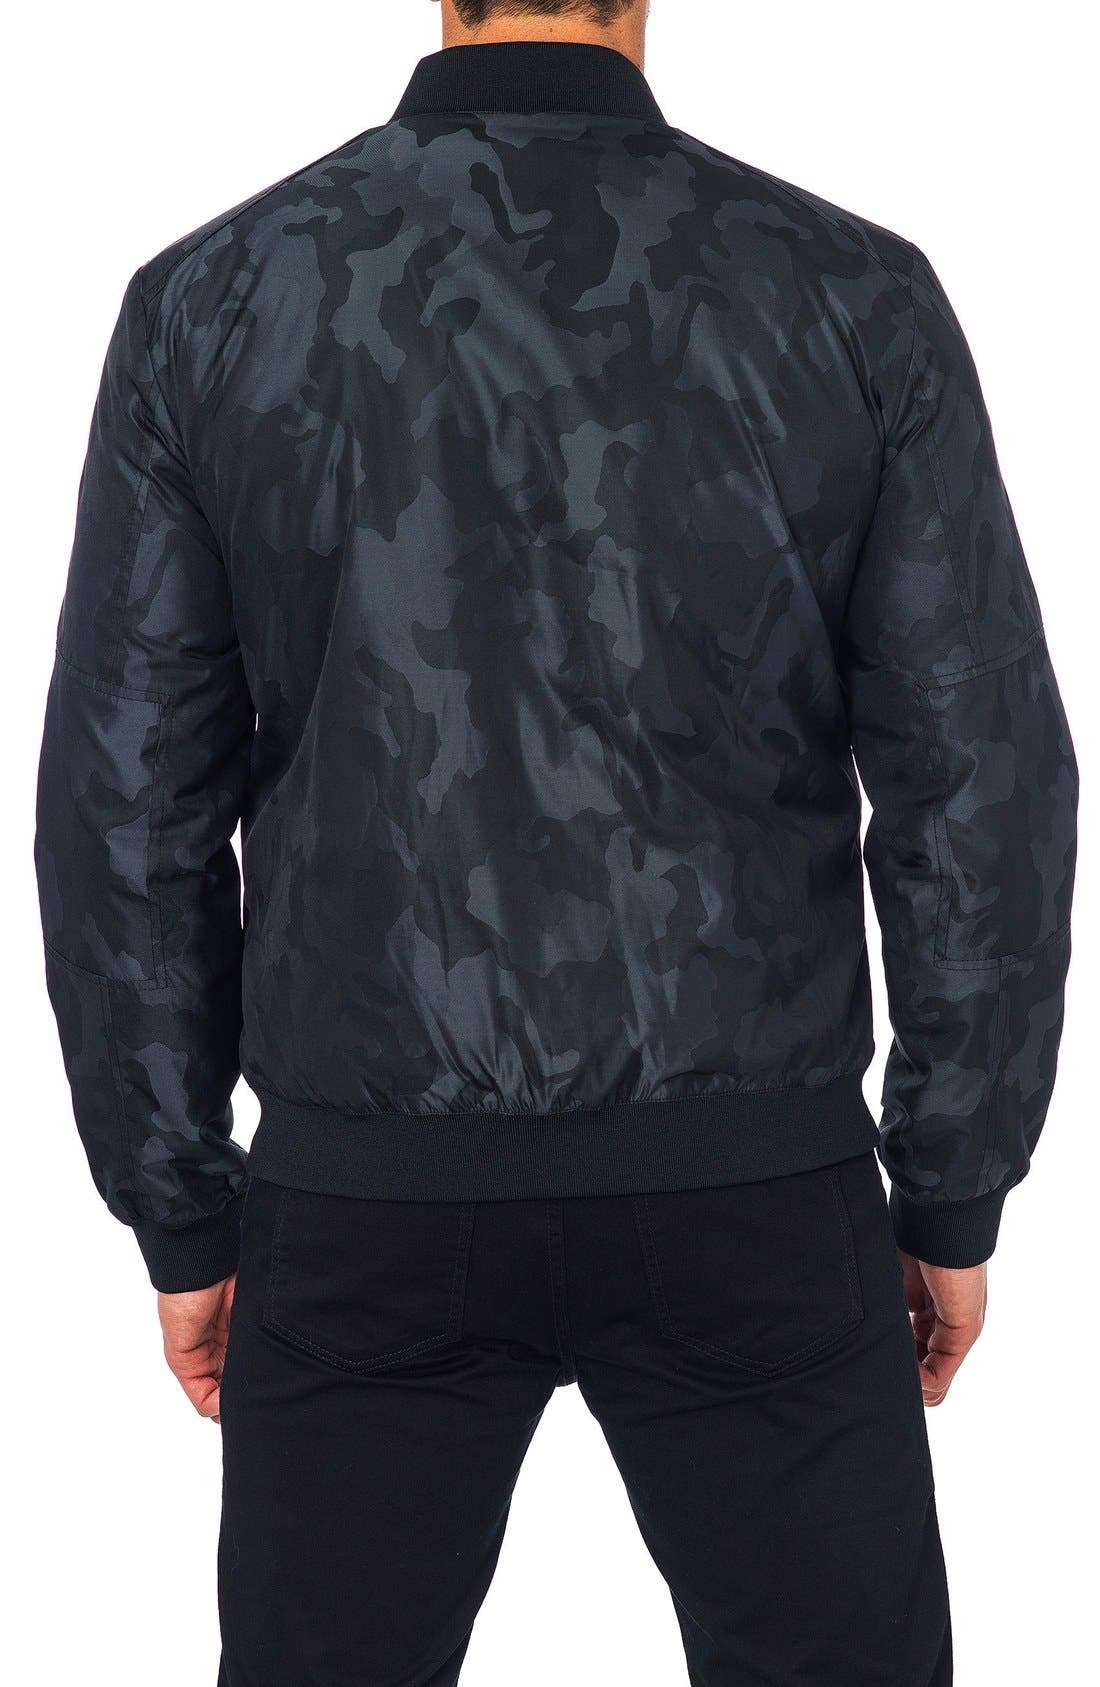 New York Reversible Bomber Jacket,                             Alternate thumbnail 2, color,                             Black Camo/ Black Quilted